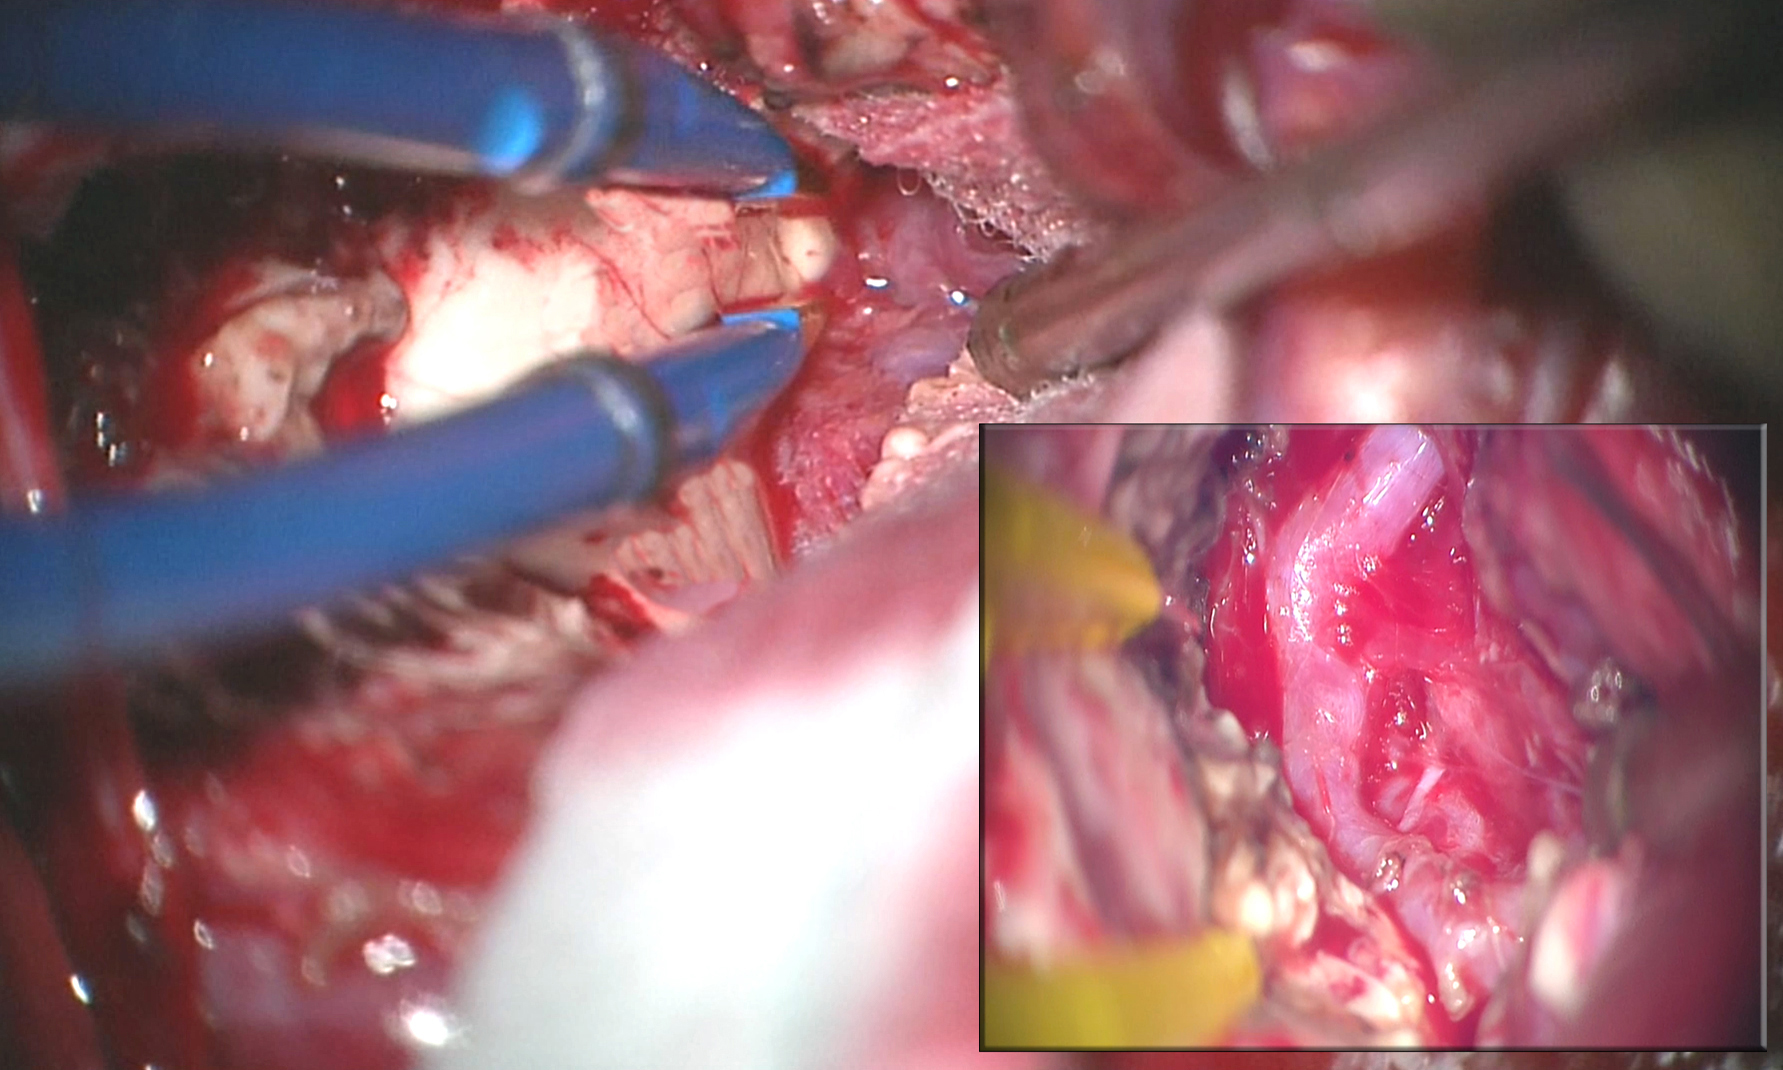 Figure 16: An intraoperative photo demonstrates the exposure of a left-sided temporal horn AVM. The lesion extended through the choroidal fissure and was intimately associated with the choroid plexus. Through the choroidal fissure, the hypertrophied feeding anterior choroidal artery was identified (inset).